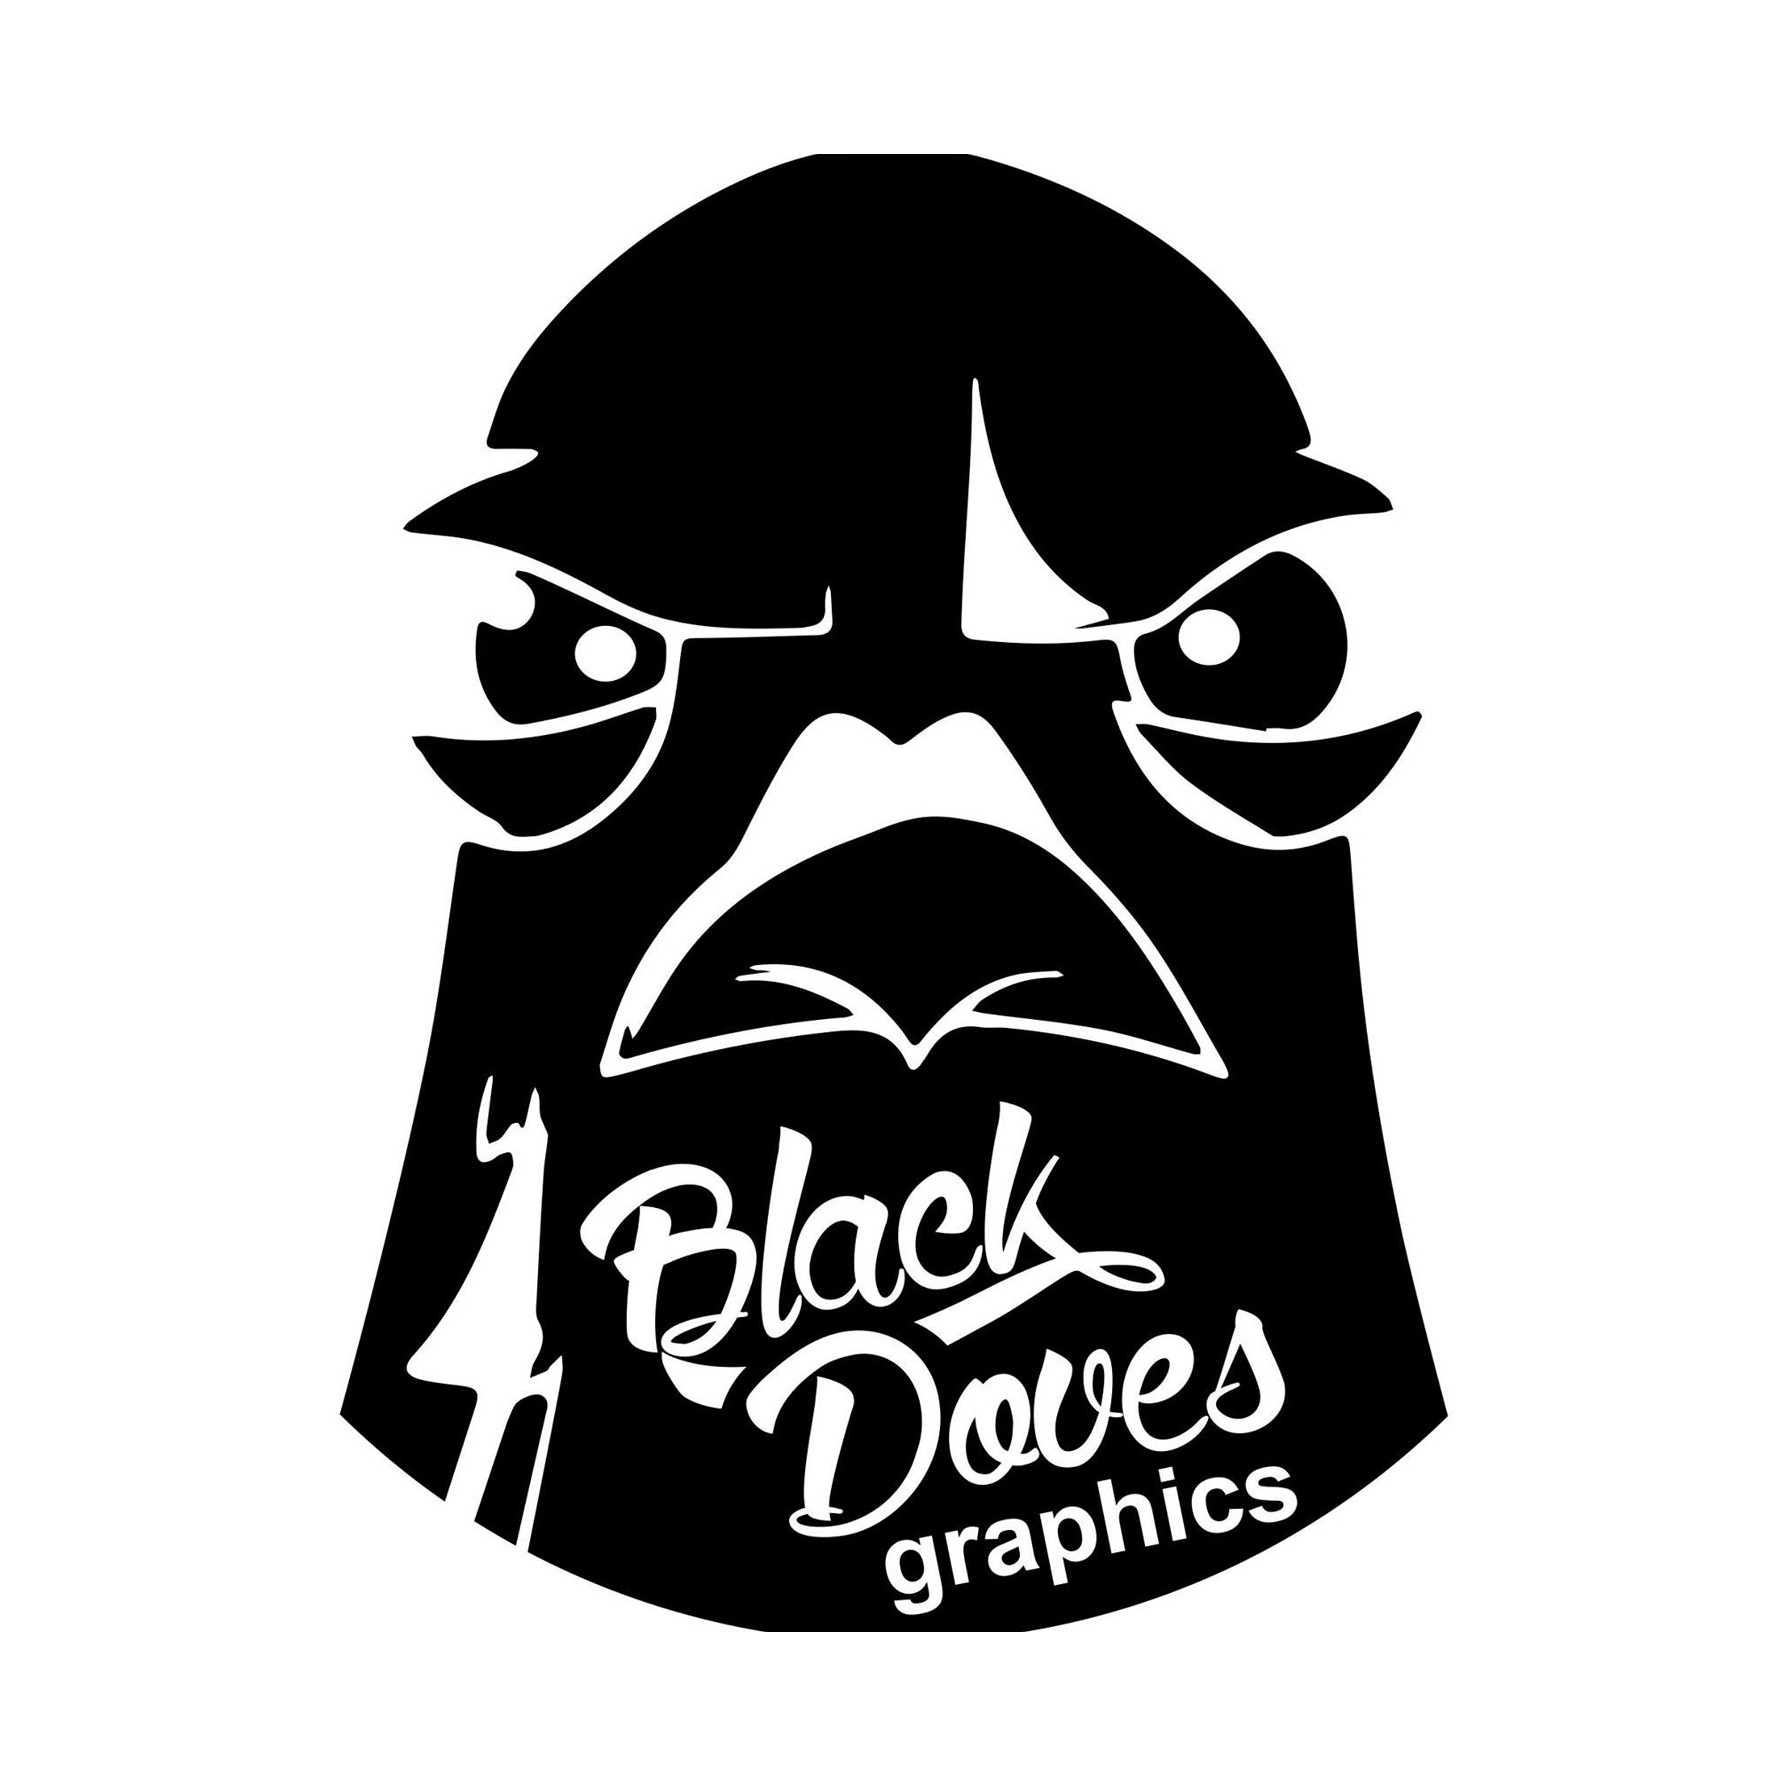 Black Doves Graphics